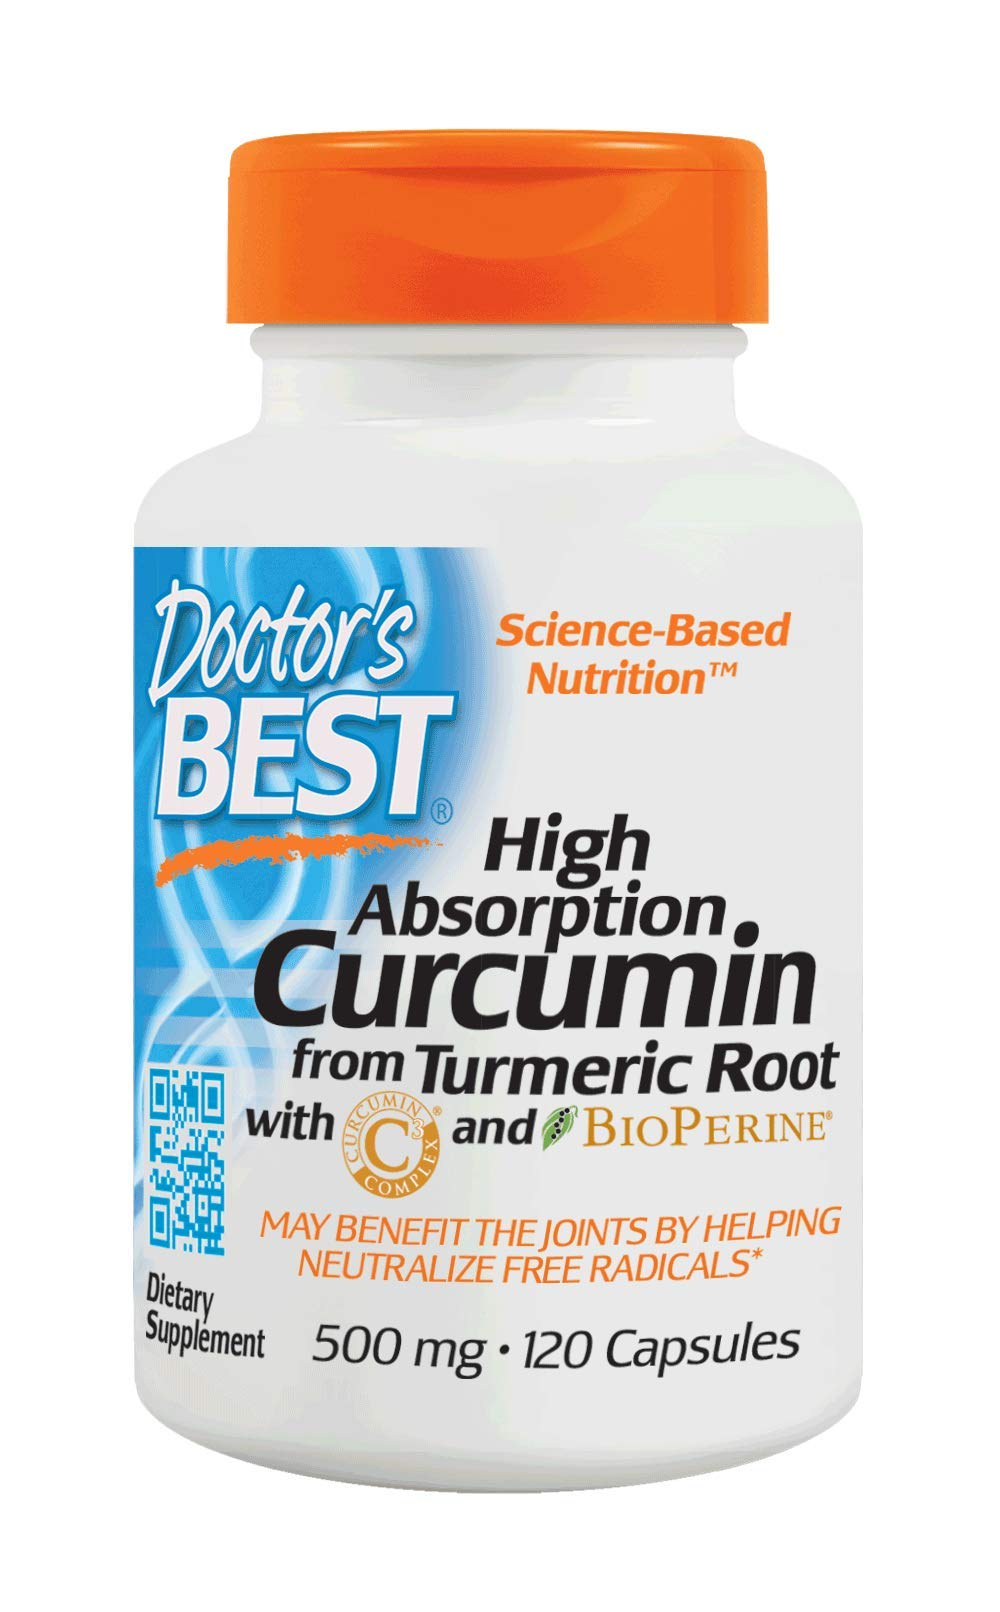 Doctor's Best Curcumin from Turmeric Root, Non-GMO, Gluten Free, Soy Free, Joint Support, 500mg Caps with C3 Complex & BioPerine, 120 Capsules